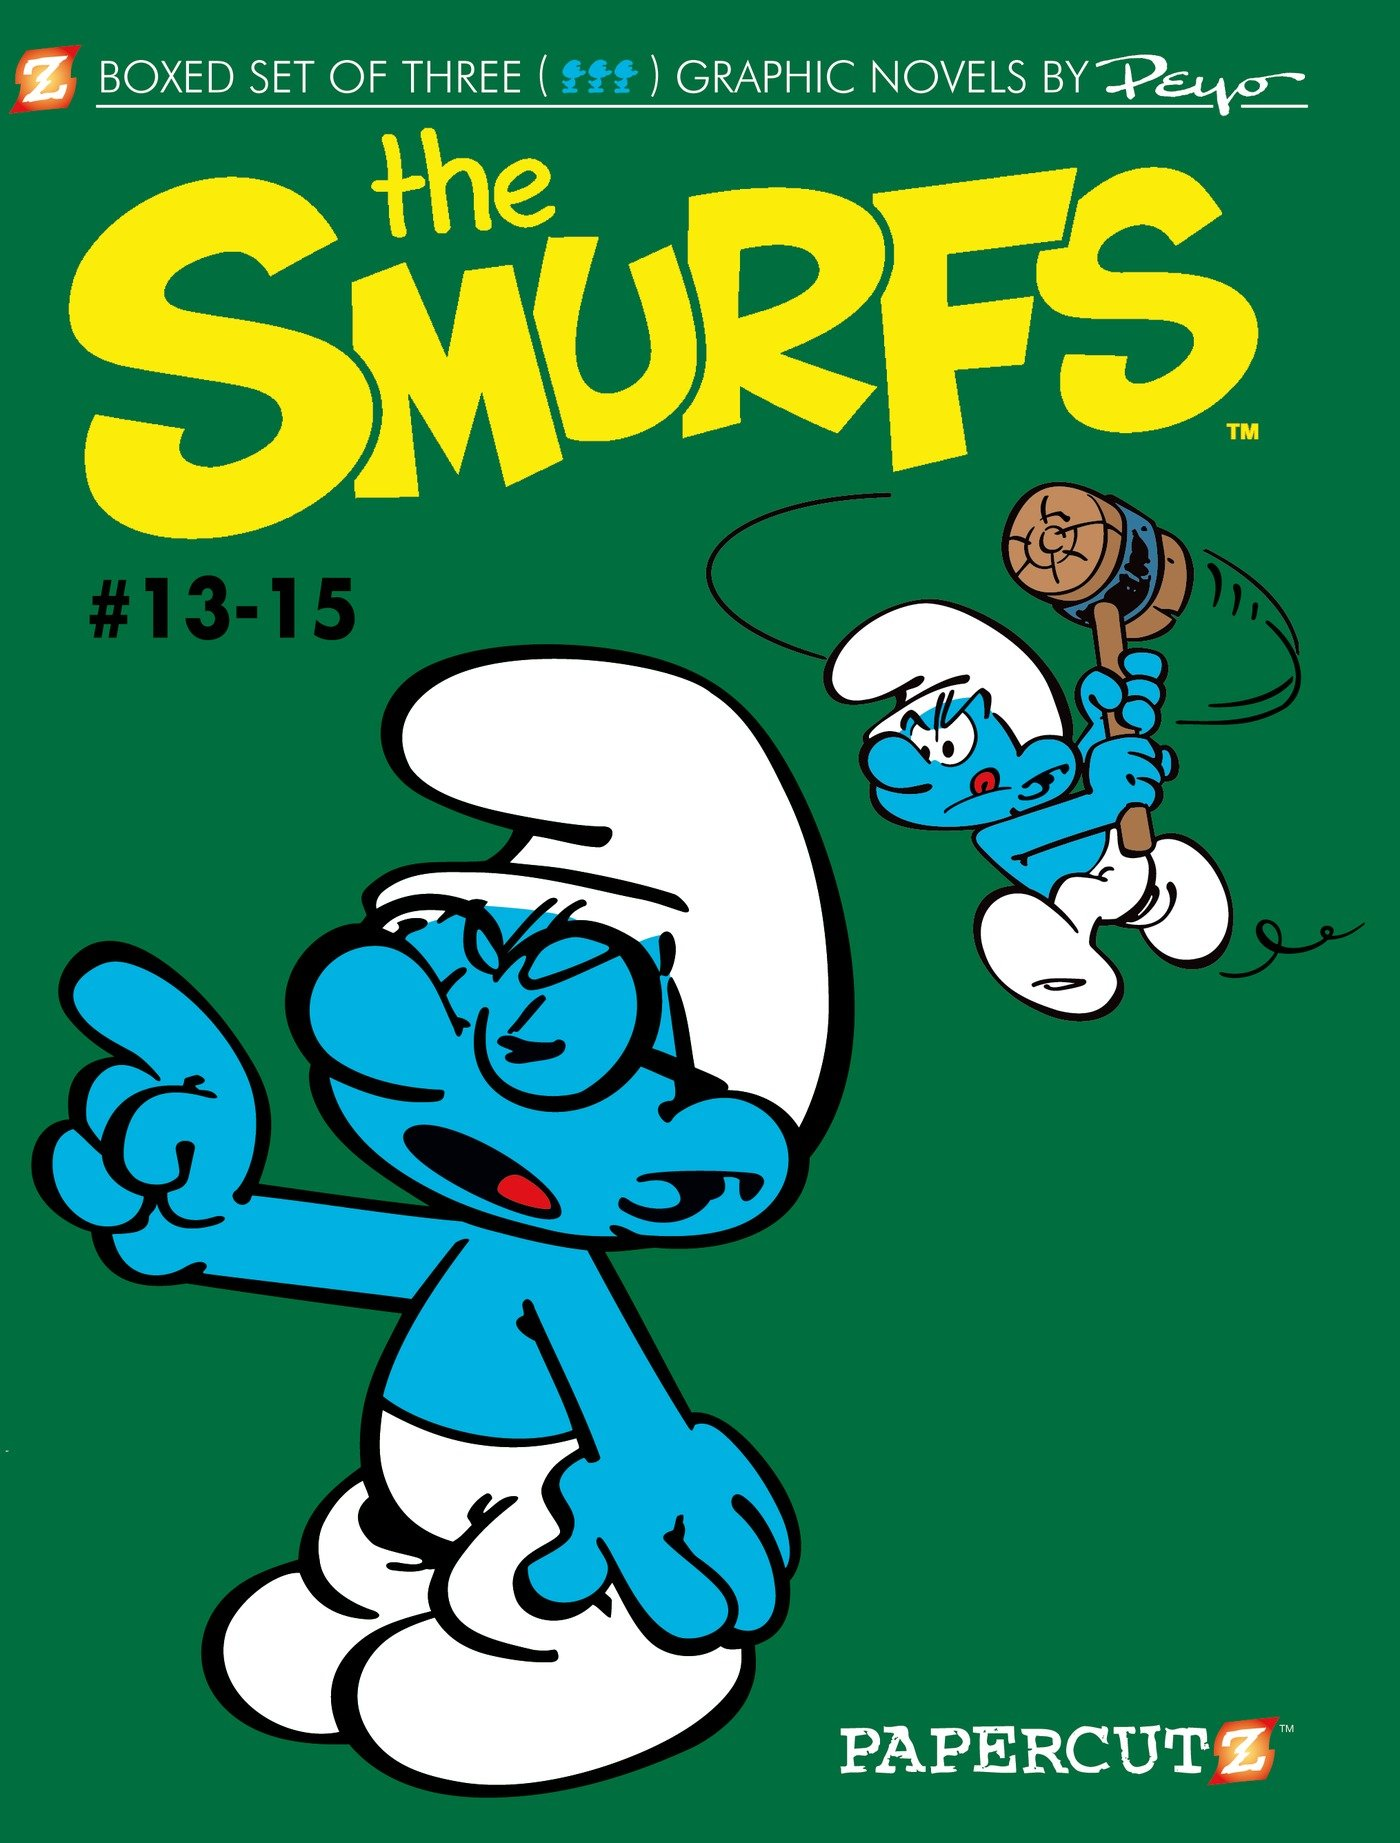 Smurfs Graphic Novels Boxed Set: Vol. #13-15, The (The Smurfs Graphic Novels) pdf epub